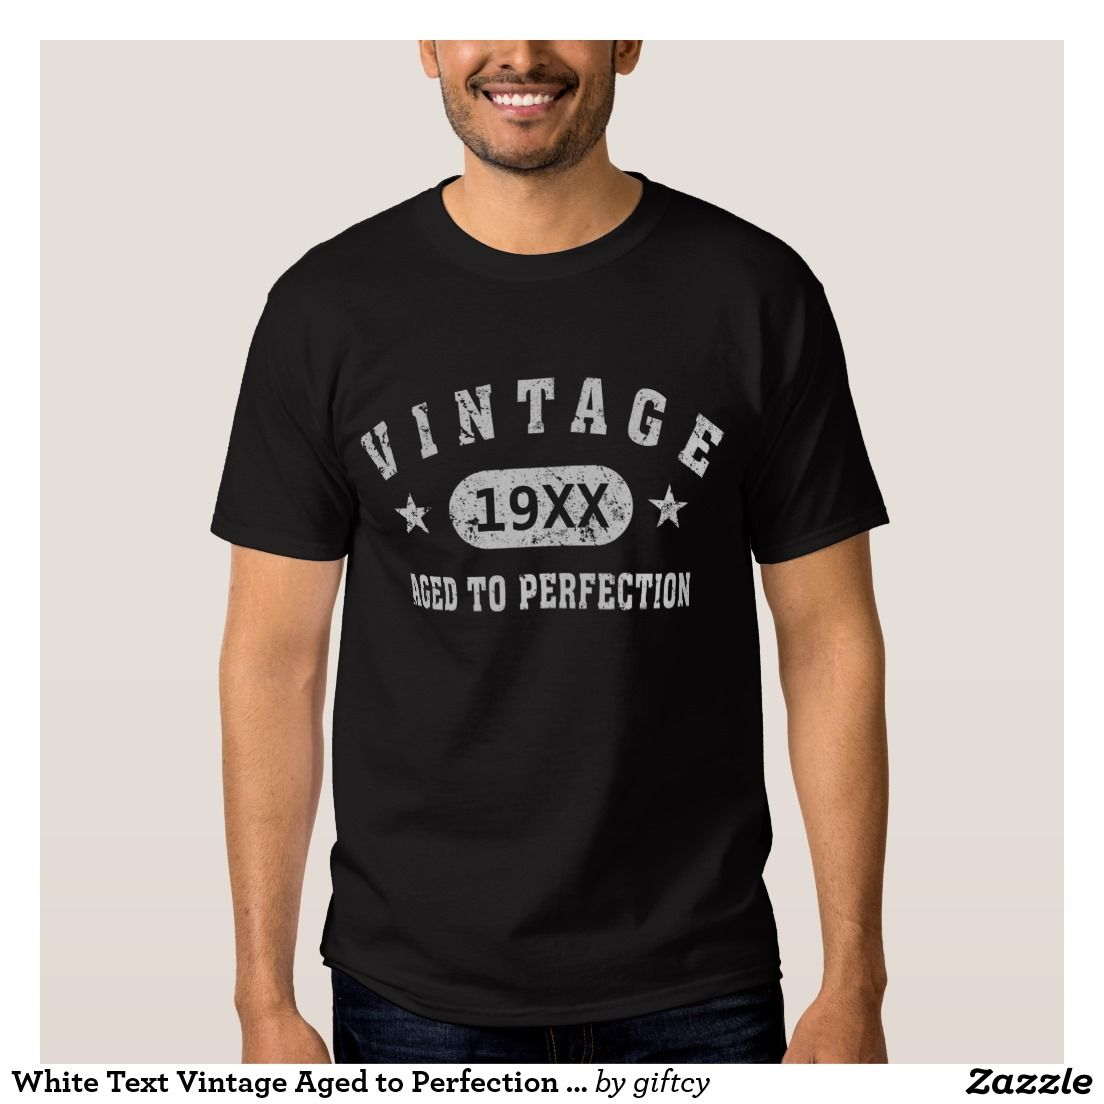 White Text Vintage Aged to Perfection Dark T-Shirt